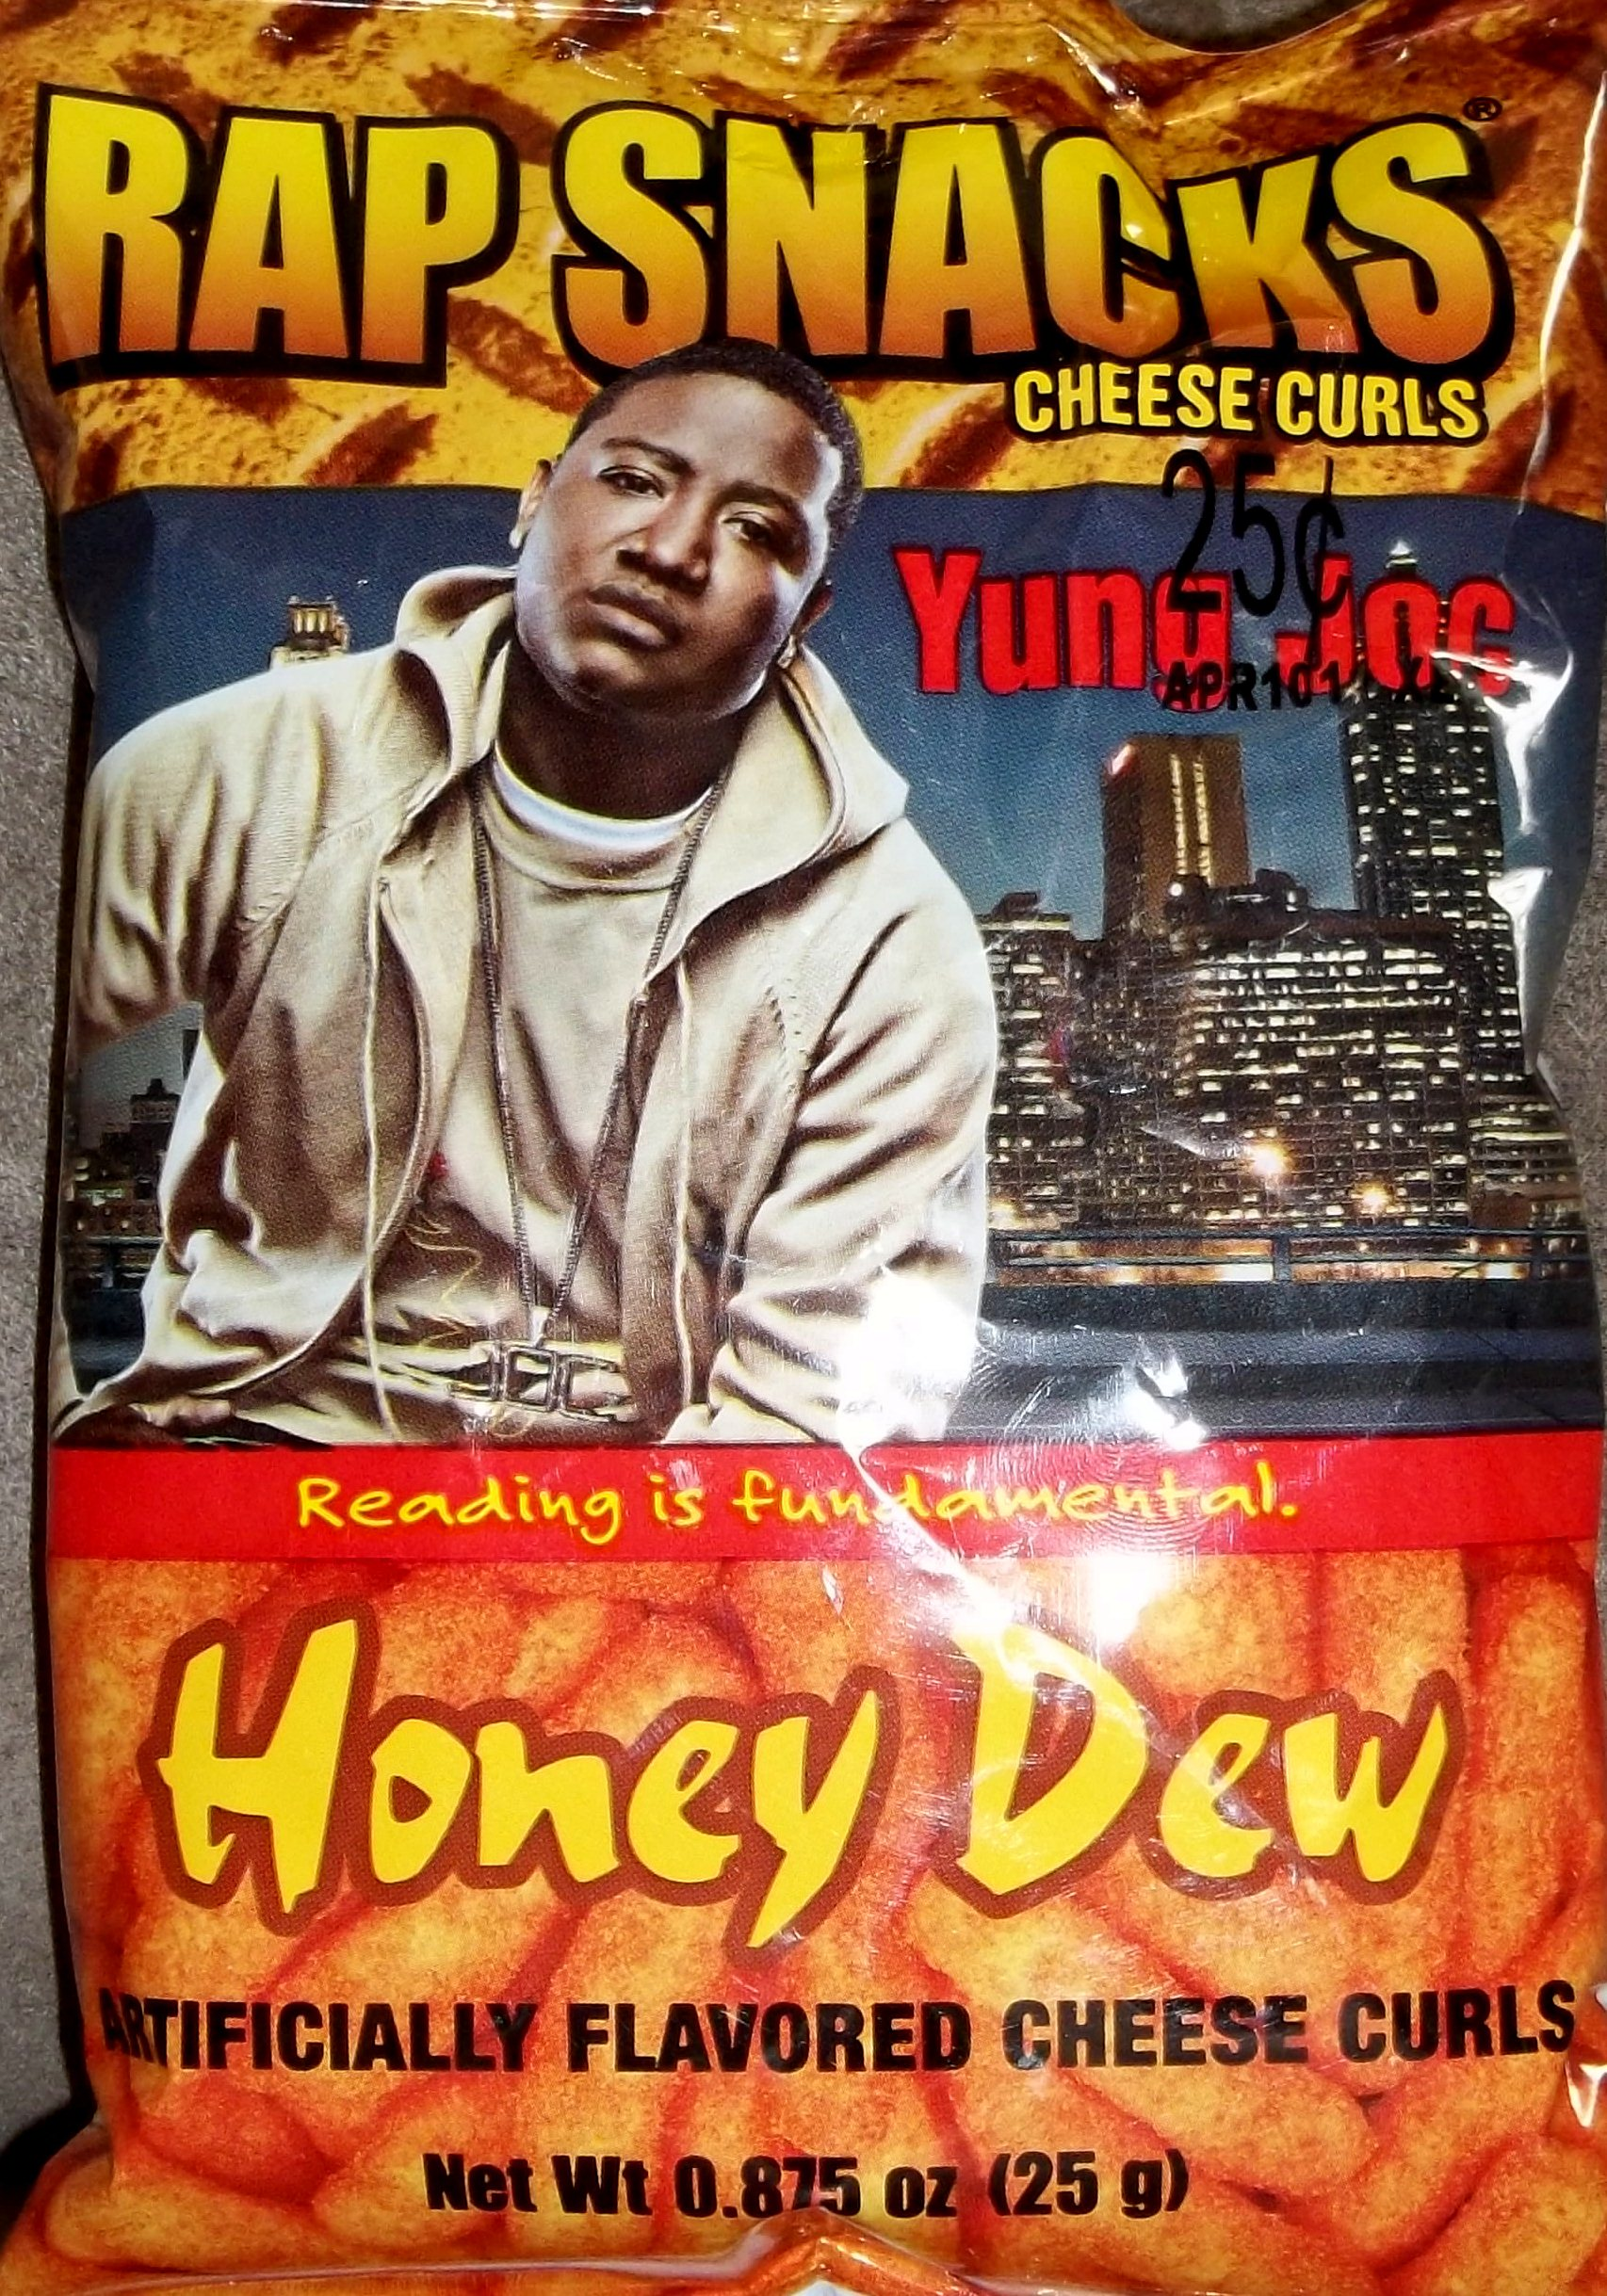 ... talk about something amazing I recently found out about: Rap Snacks